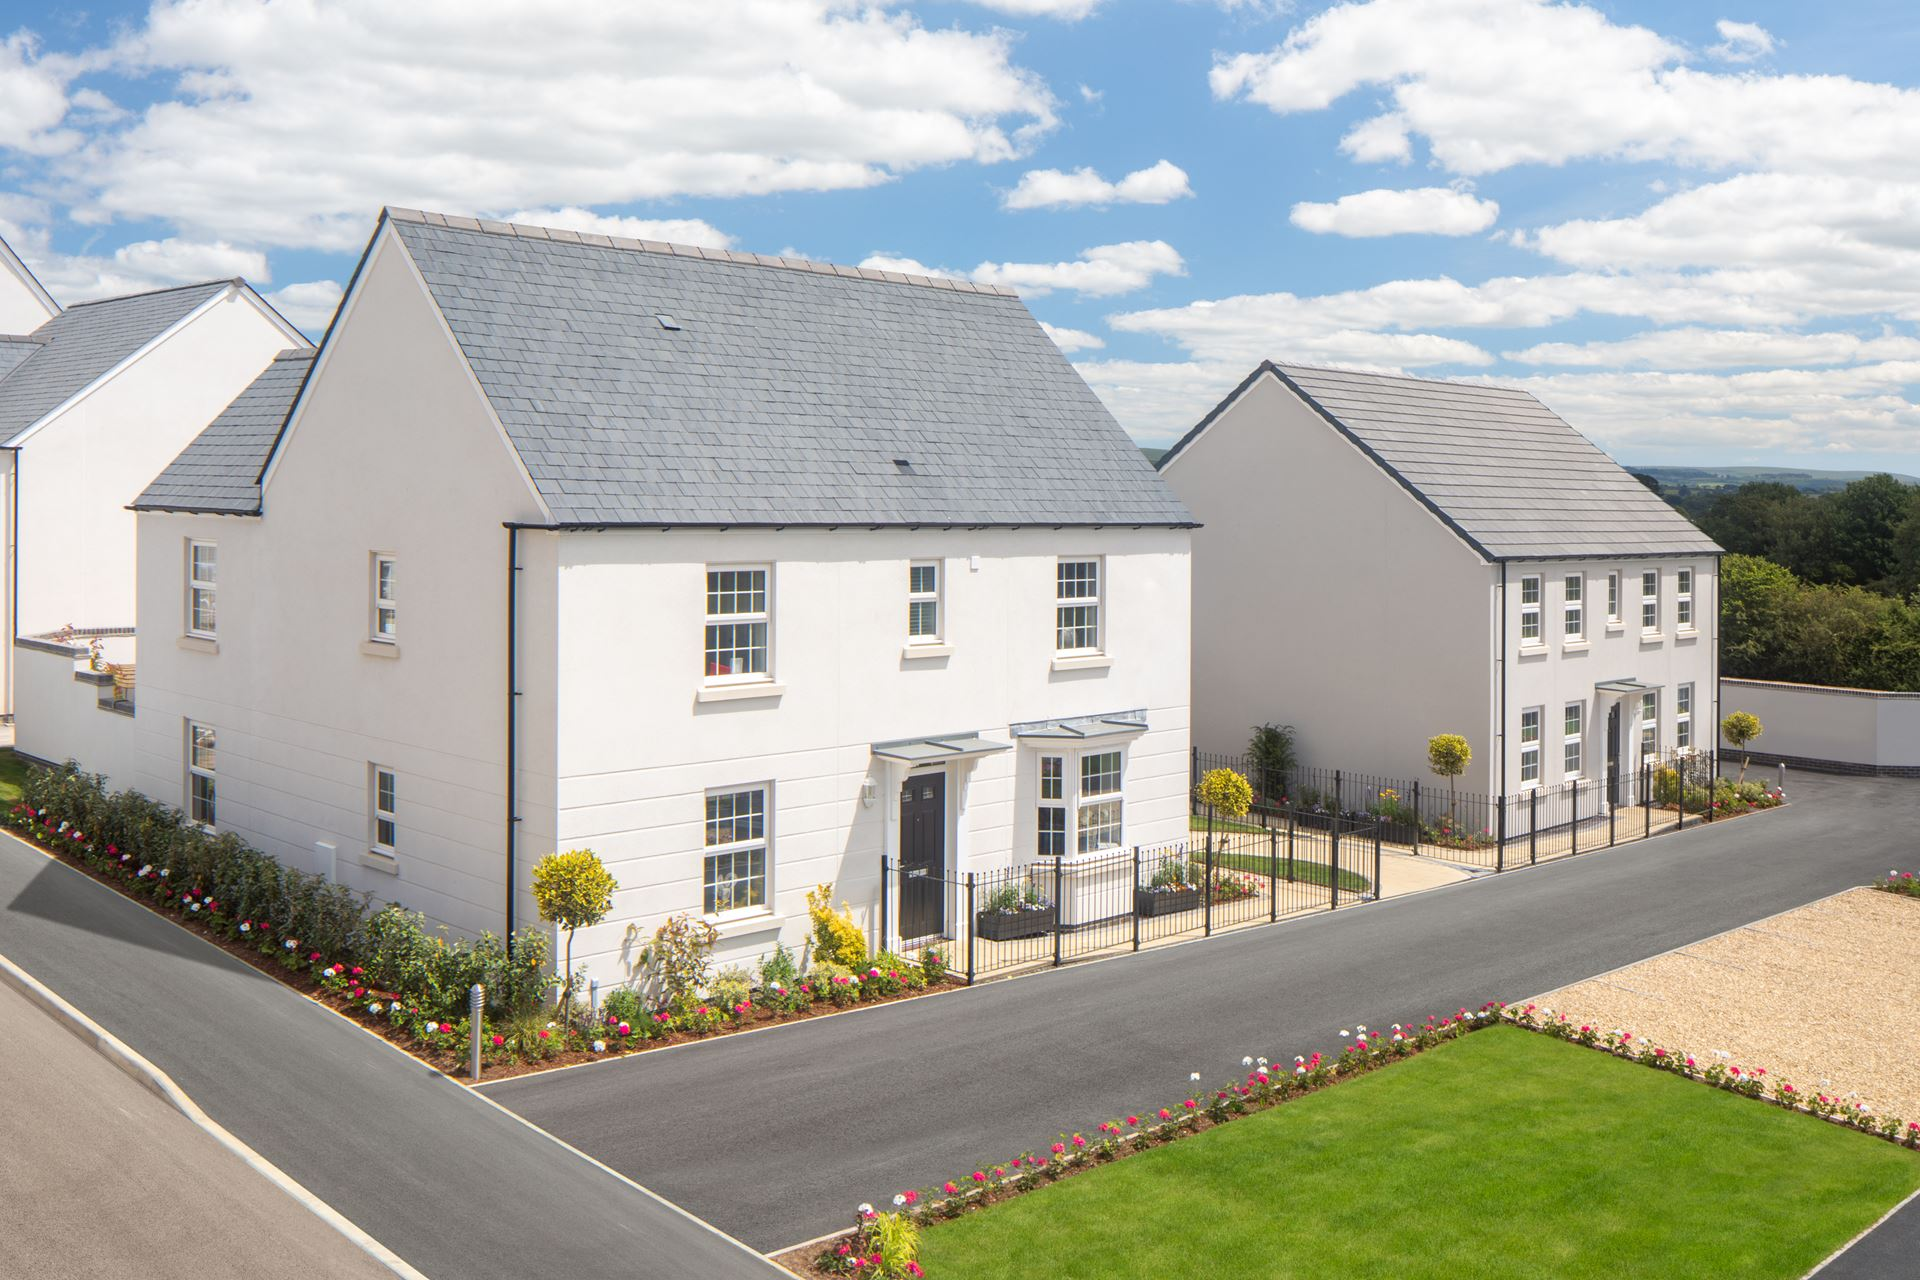 New Homes for sale in Devon | Houses in Devon | DWH